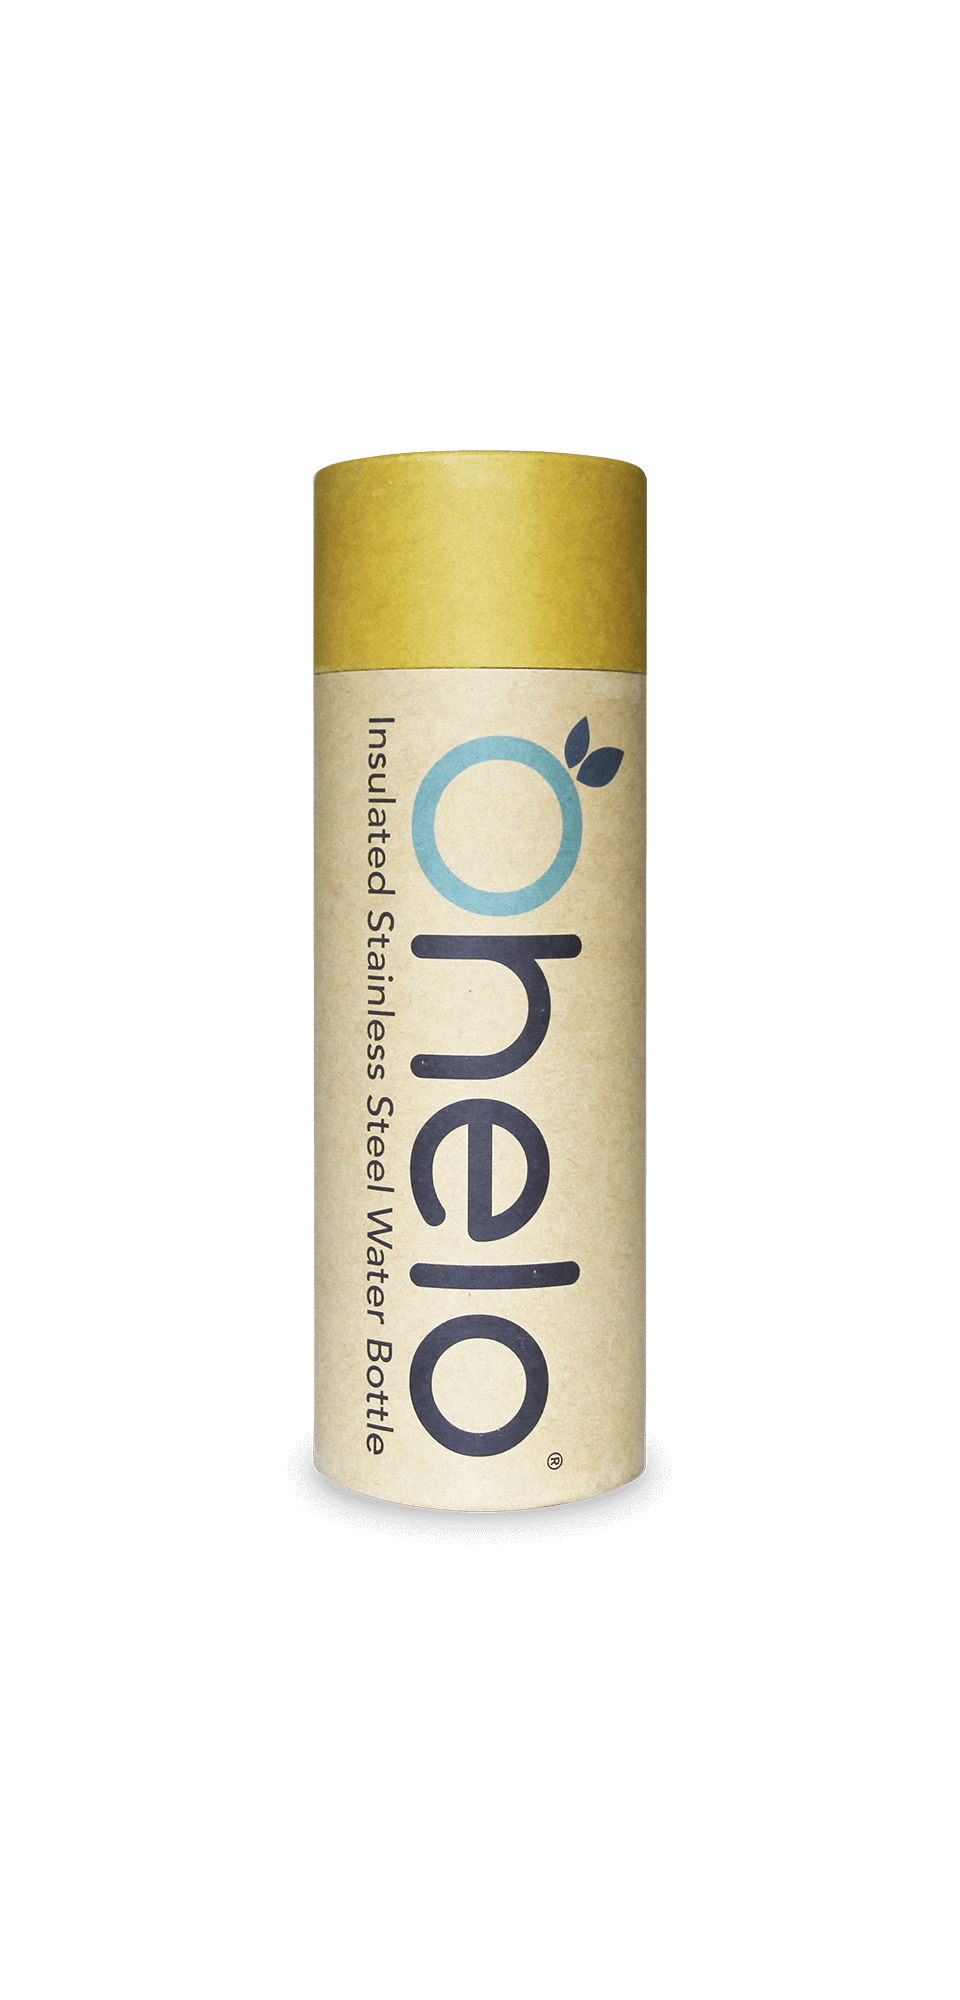 Ohelo yellow water bottle box